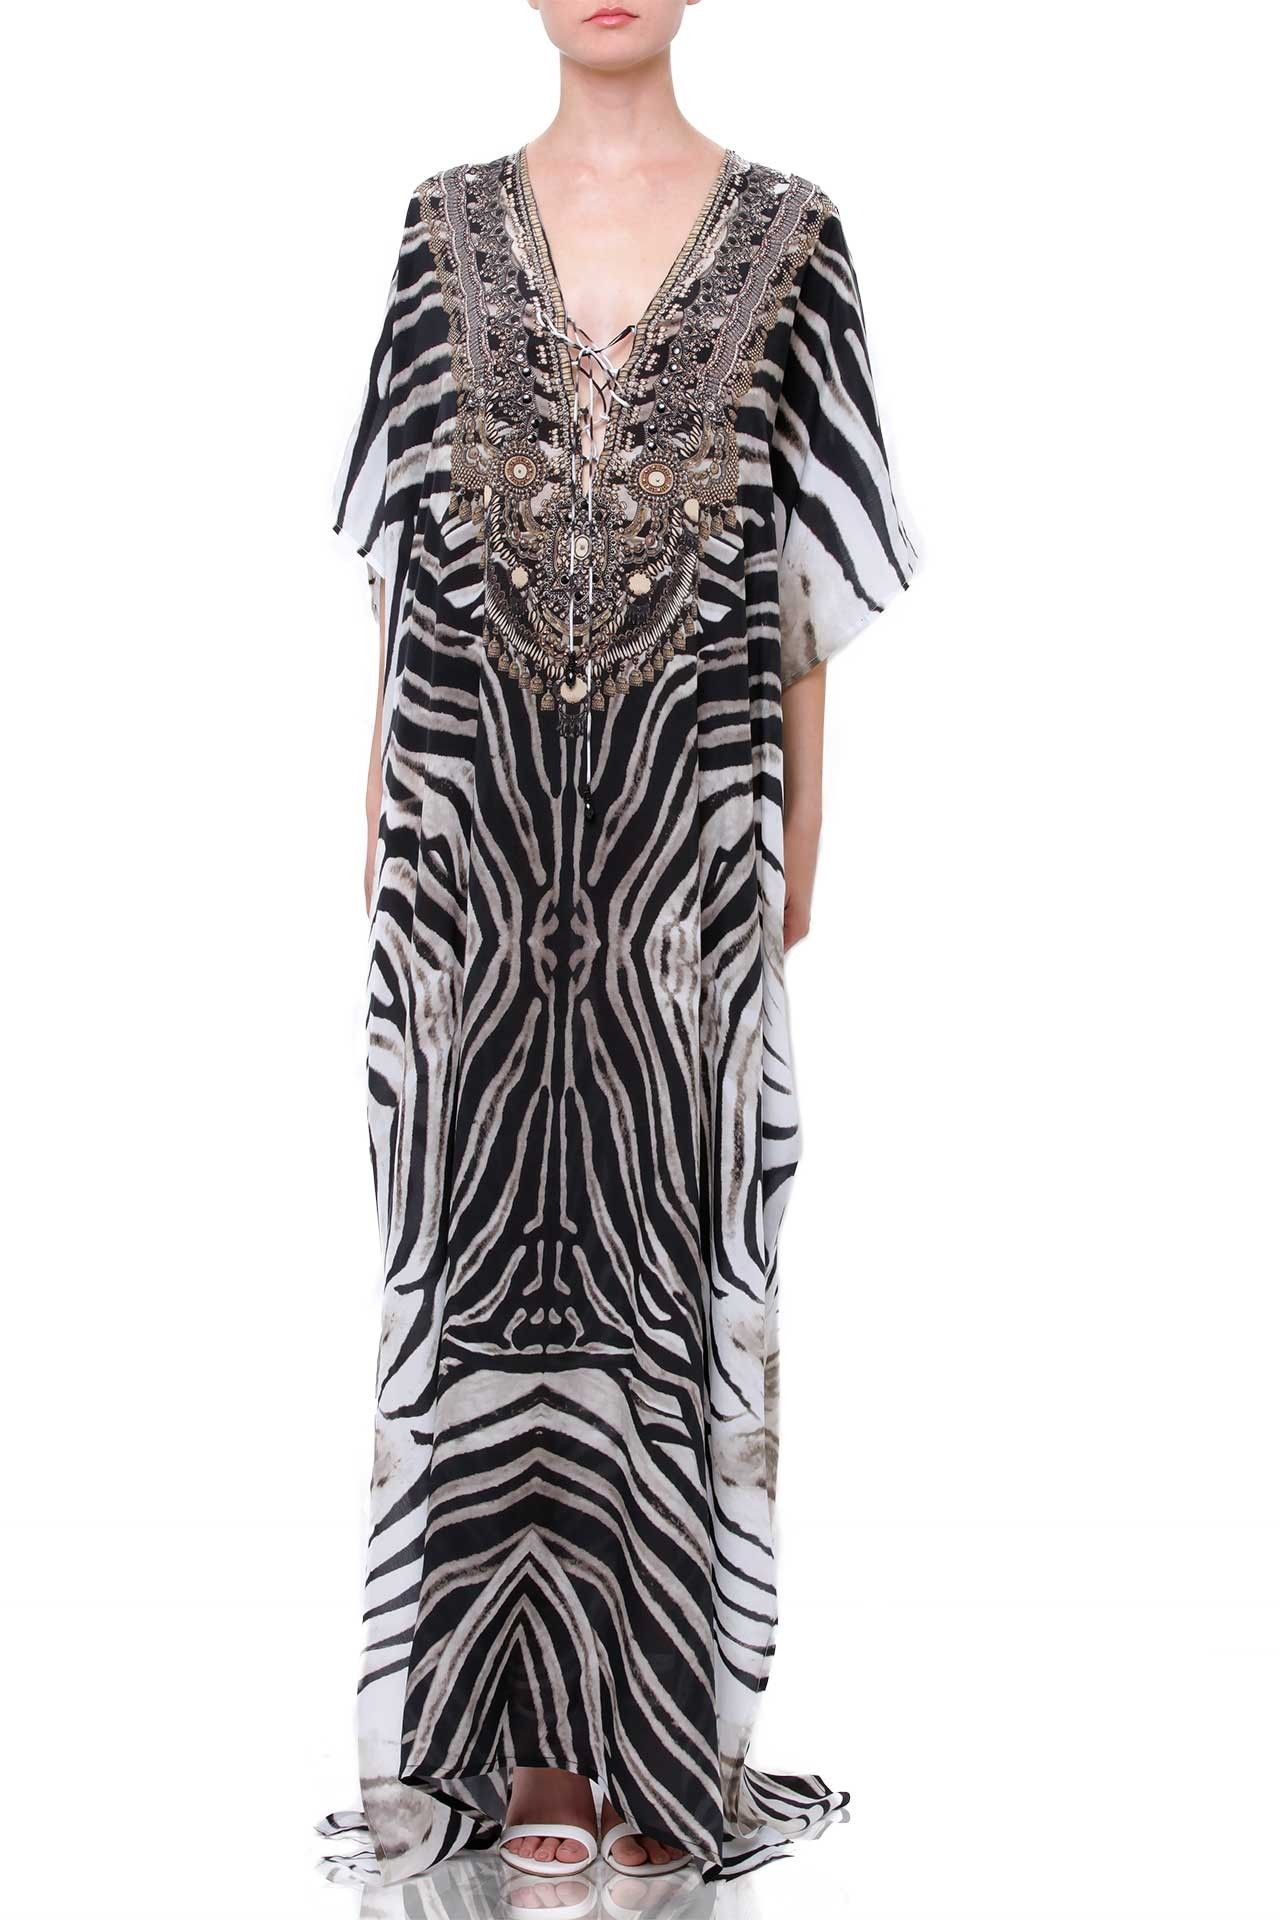 Black and White Printed Long Kaftan Dress in Stripes | Lois\' style ...